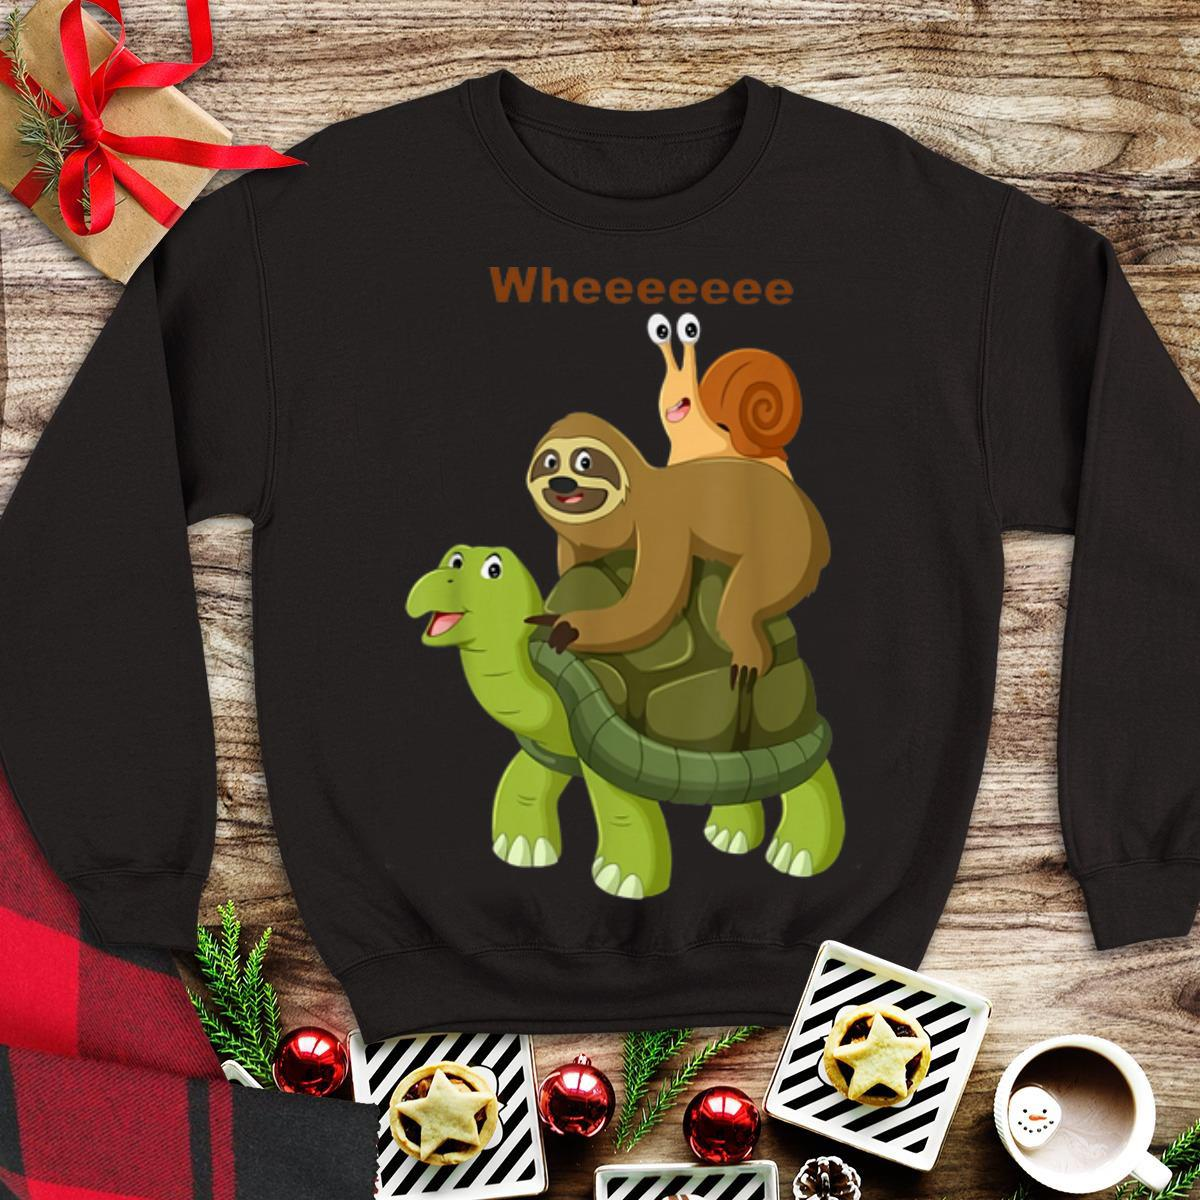 Awesome Turtle Sloth Snail Best Friend Wheee shirt